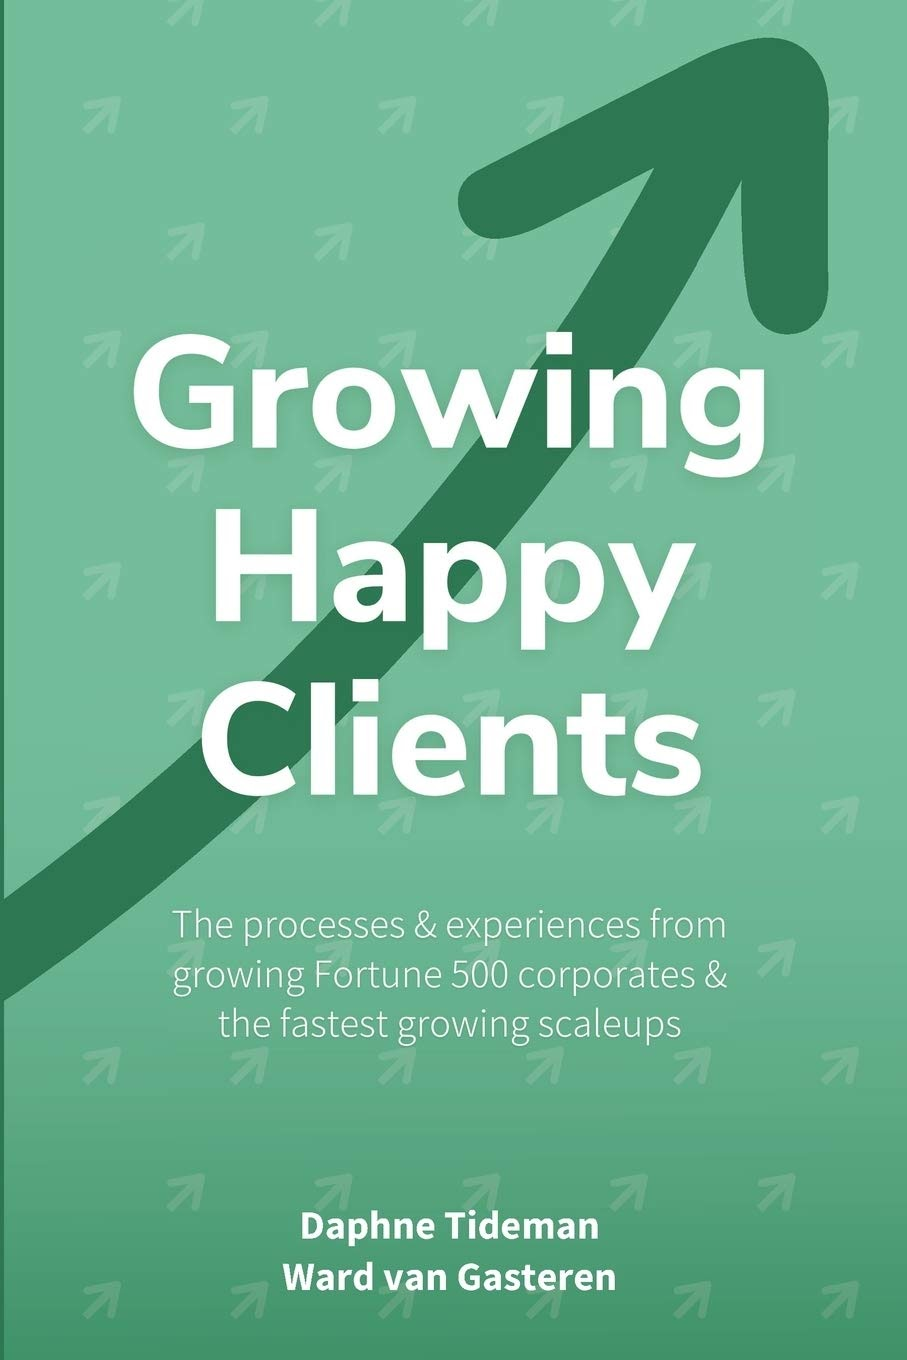 growth and growth hacking books growing happy clients